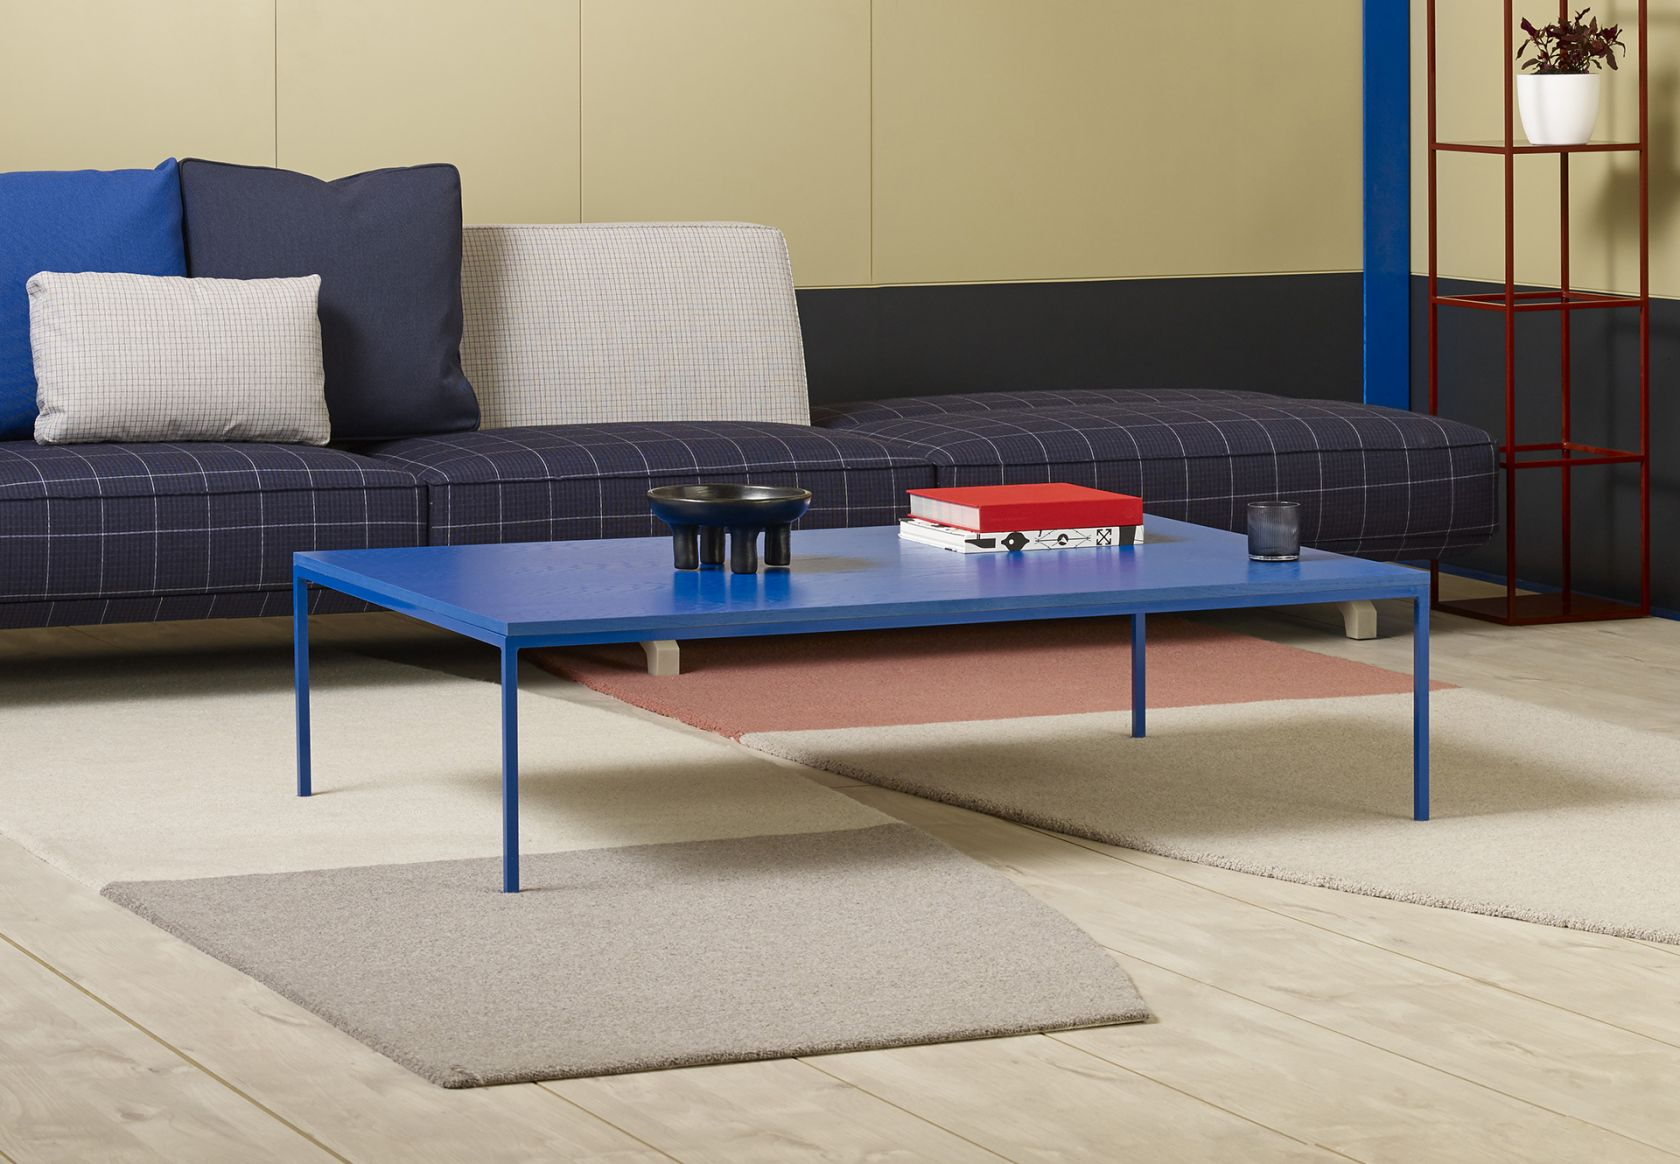 NGV Table ColourLab Gentian Blue